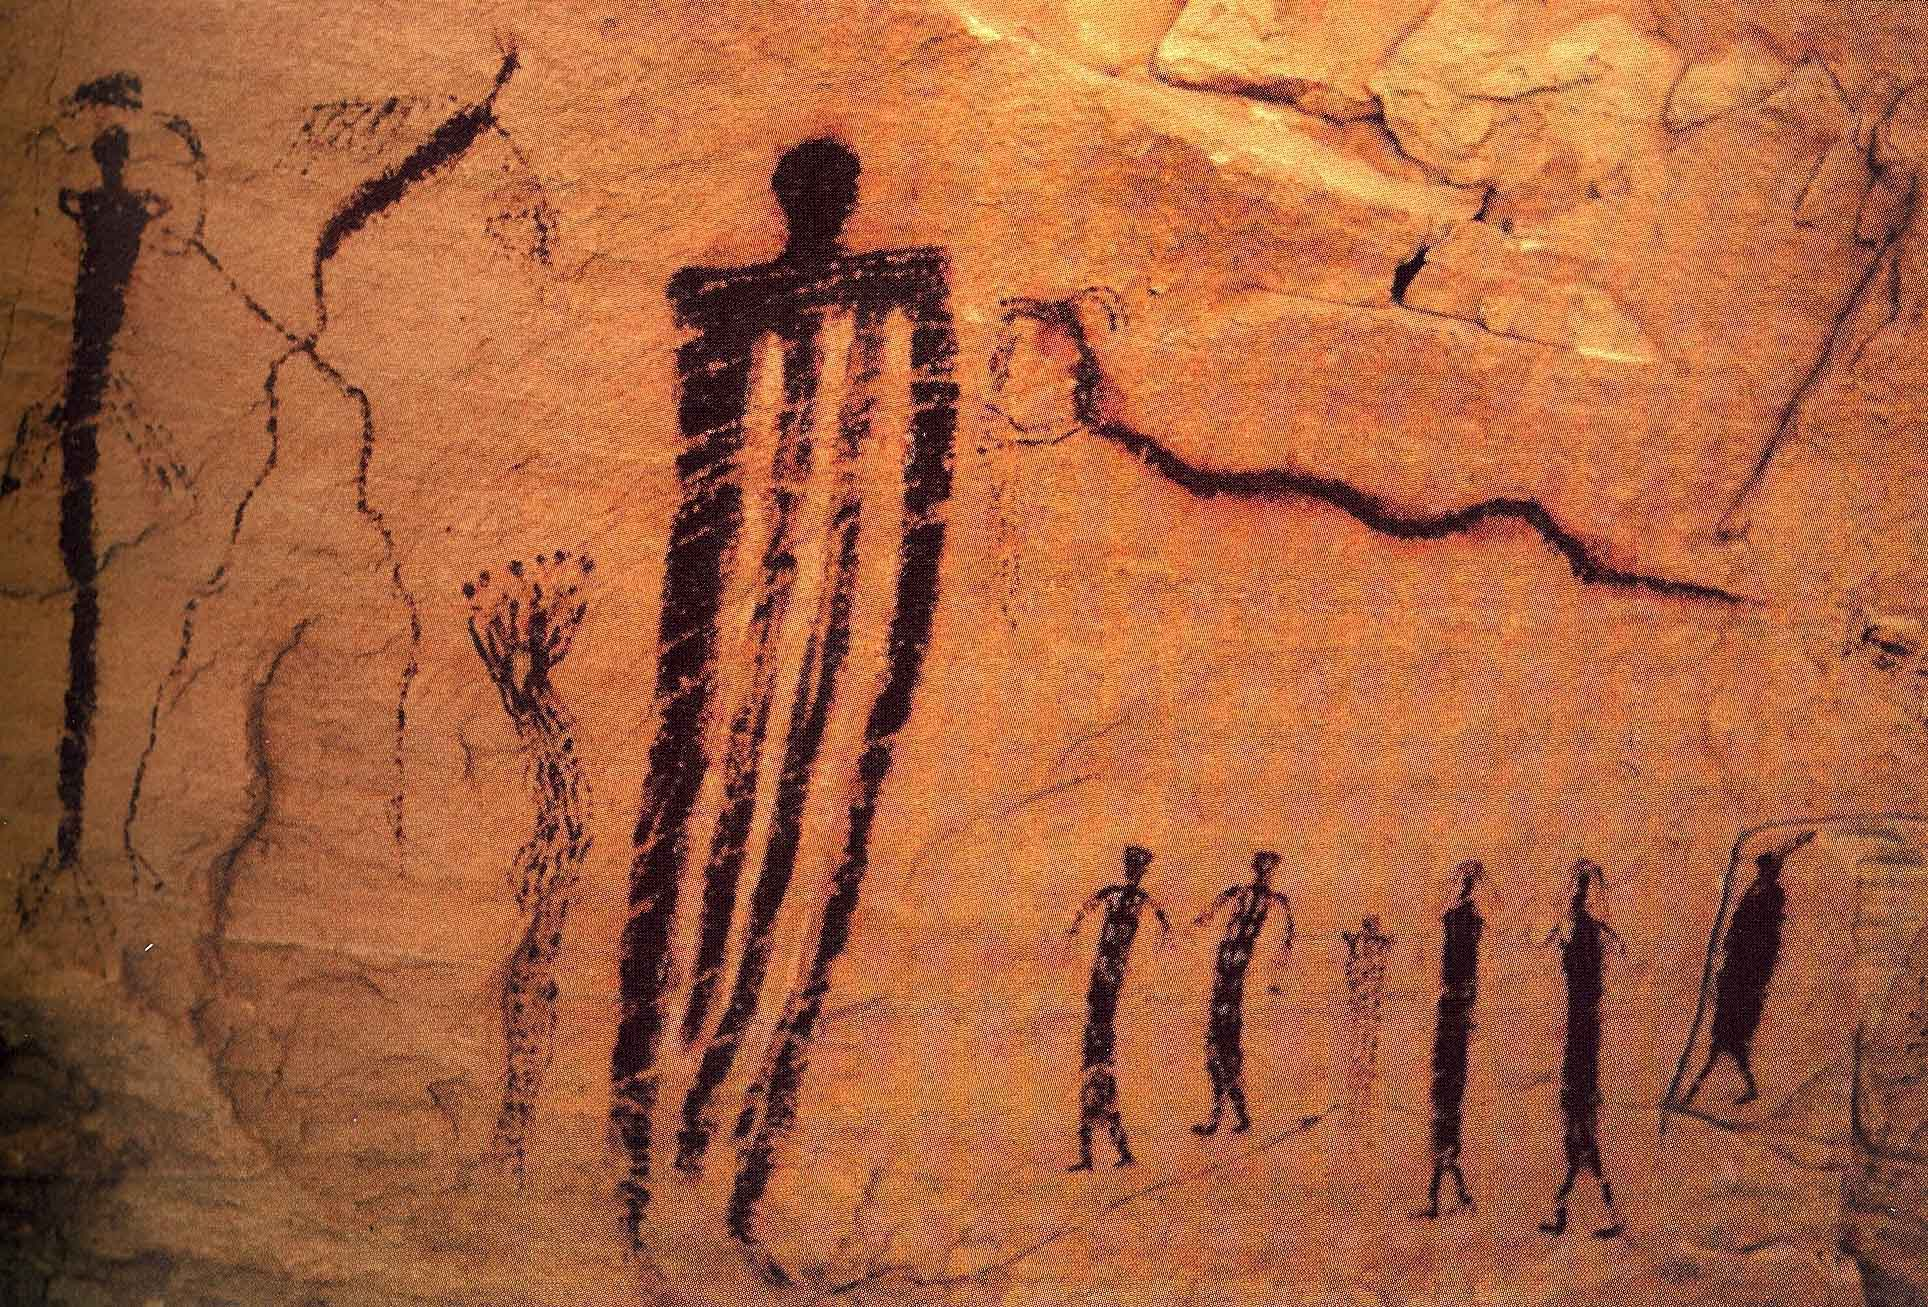 Cave Drawings And The Birth Of Information Systems